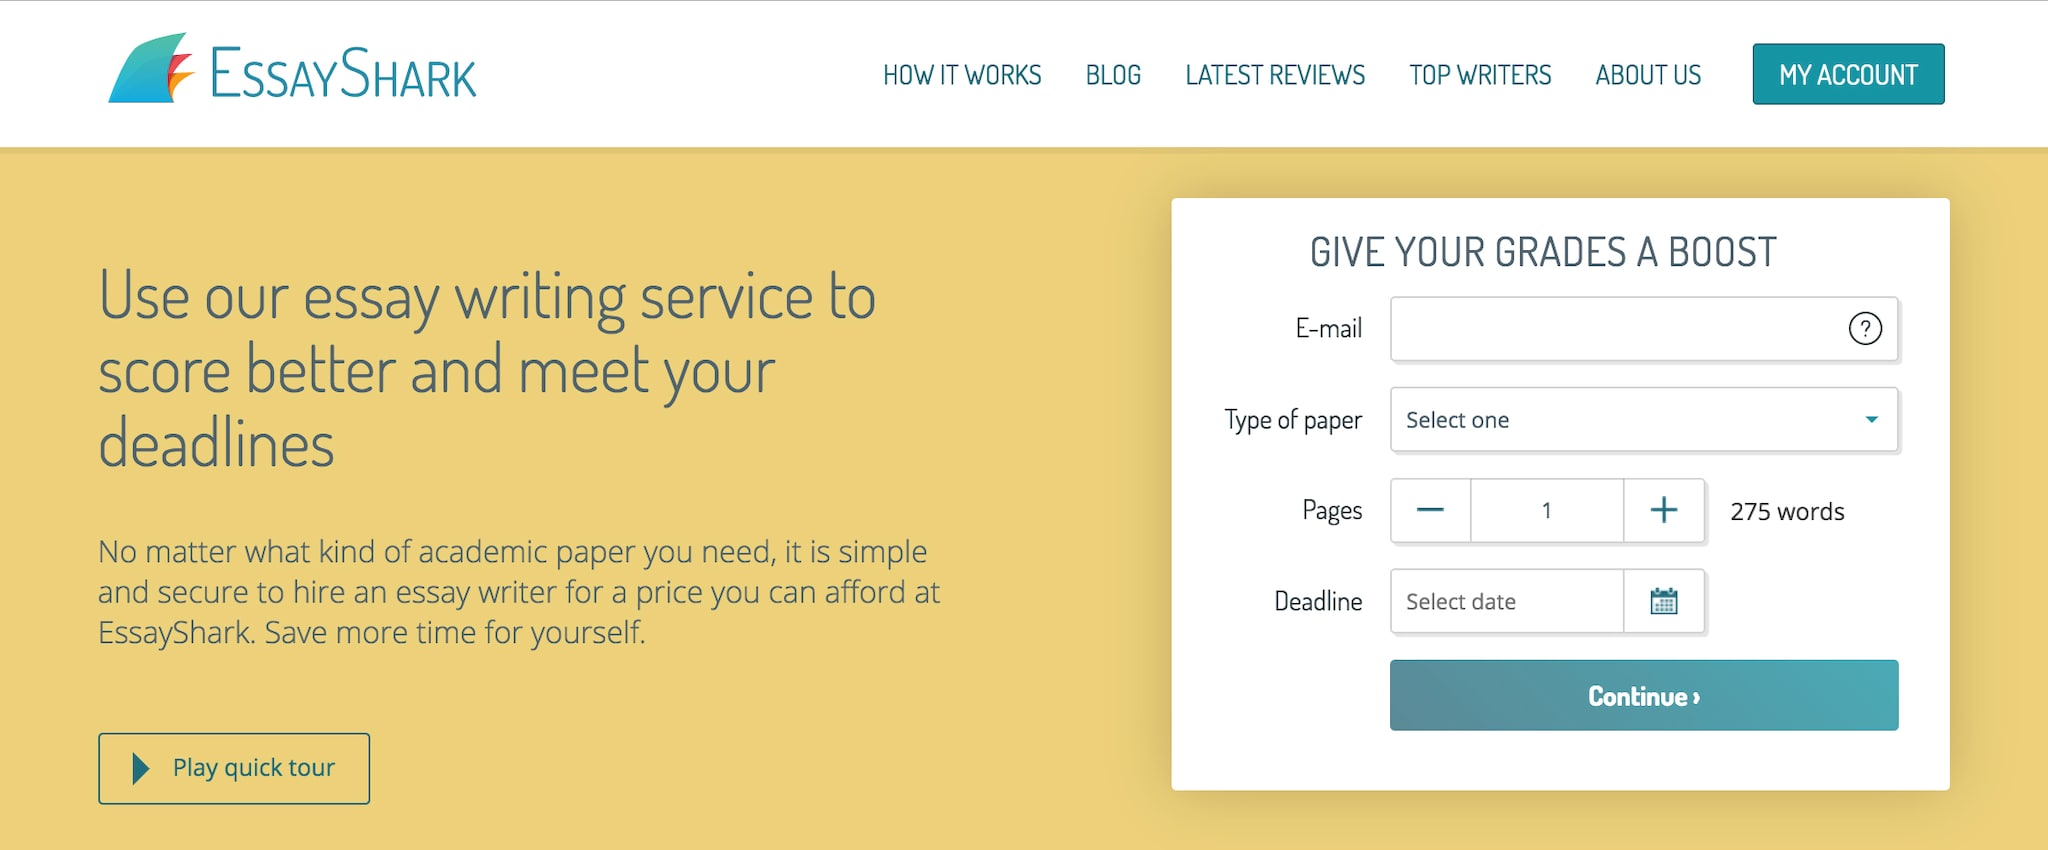 A screen shot of EssayShark's homepage, advertising essay writing services.